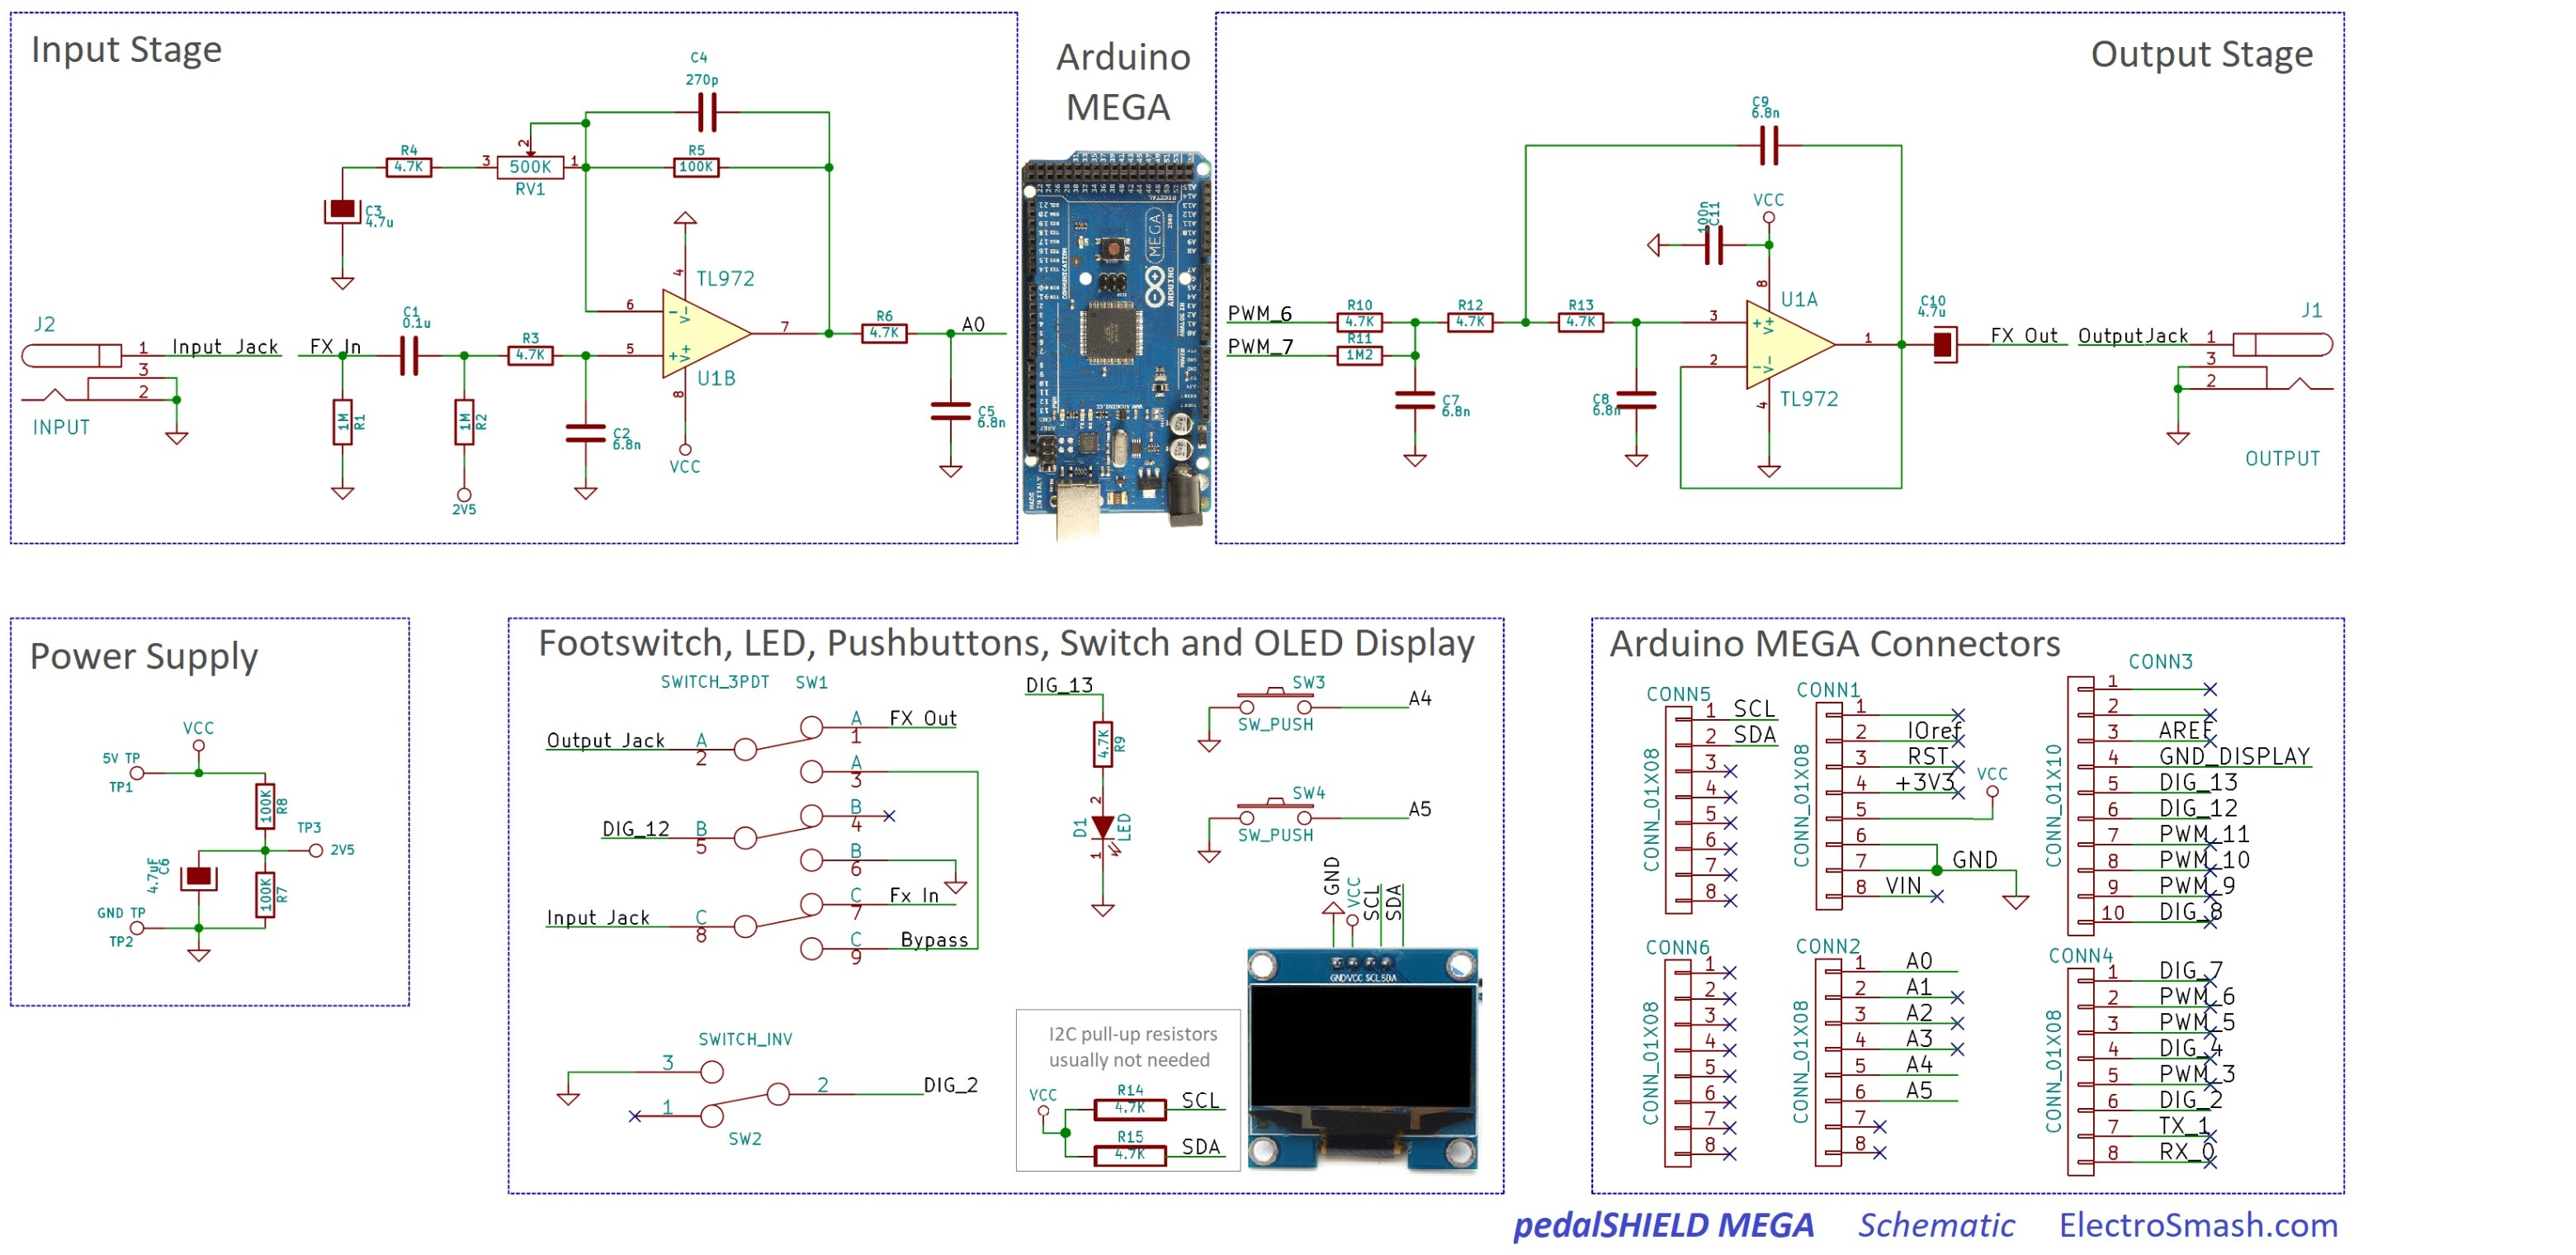 Arduino Mega Guitar Pedal 1 4 Jack Wiring For Footswitch Pedalshield Schematics